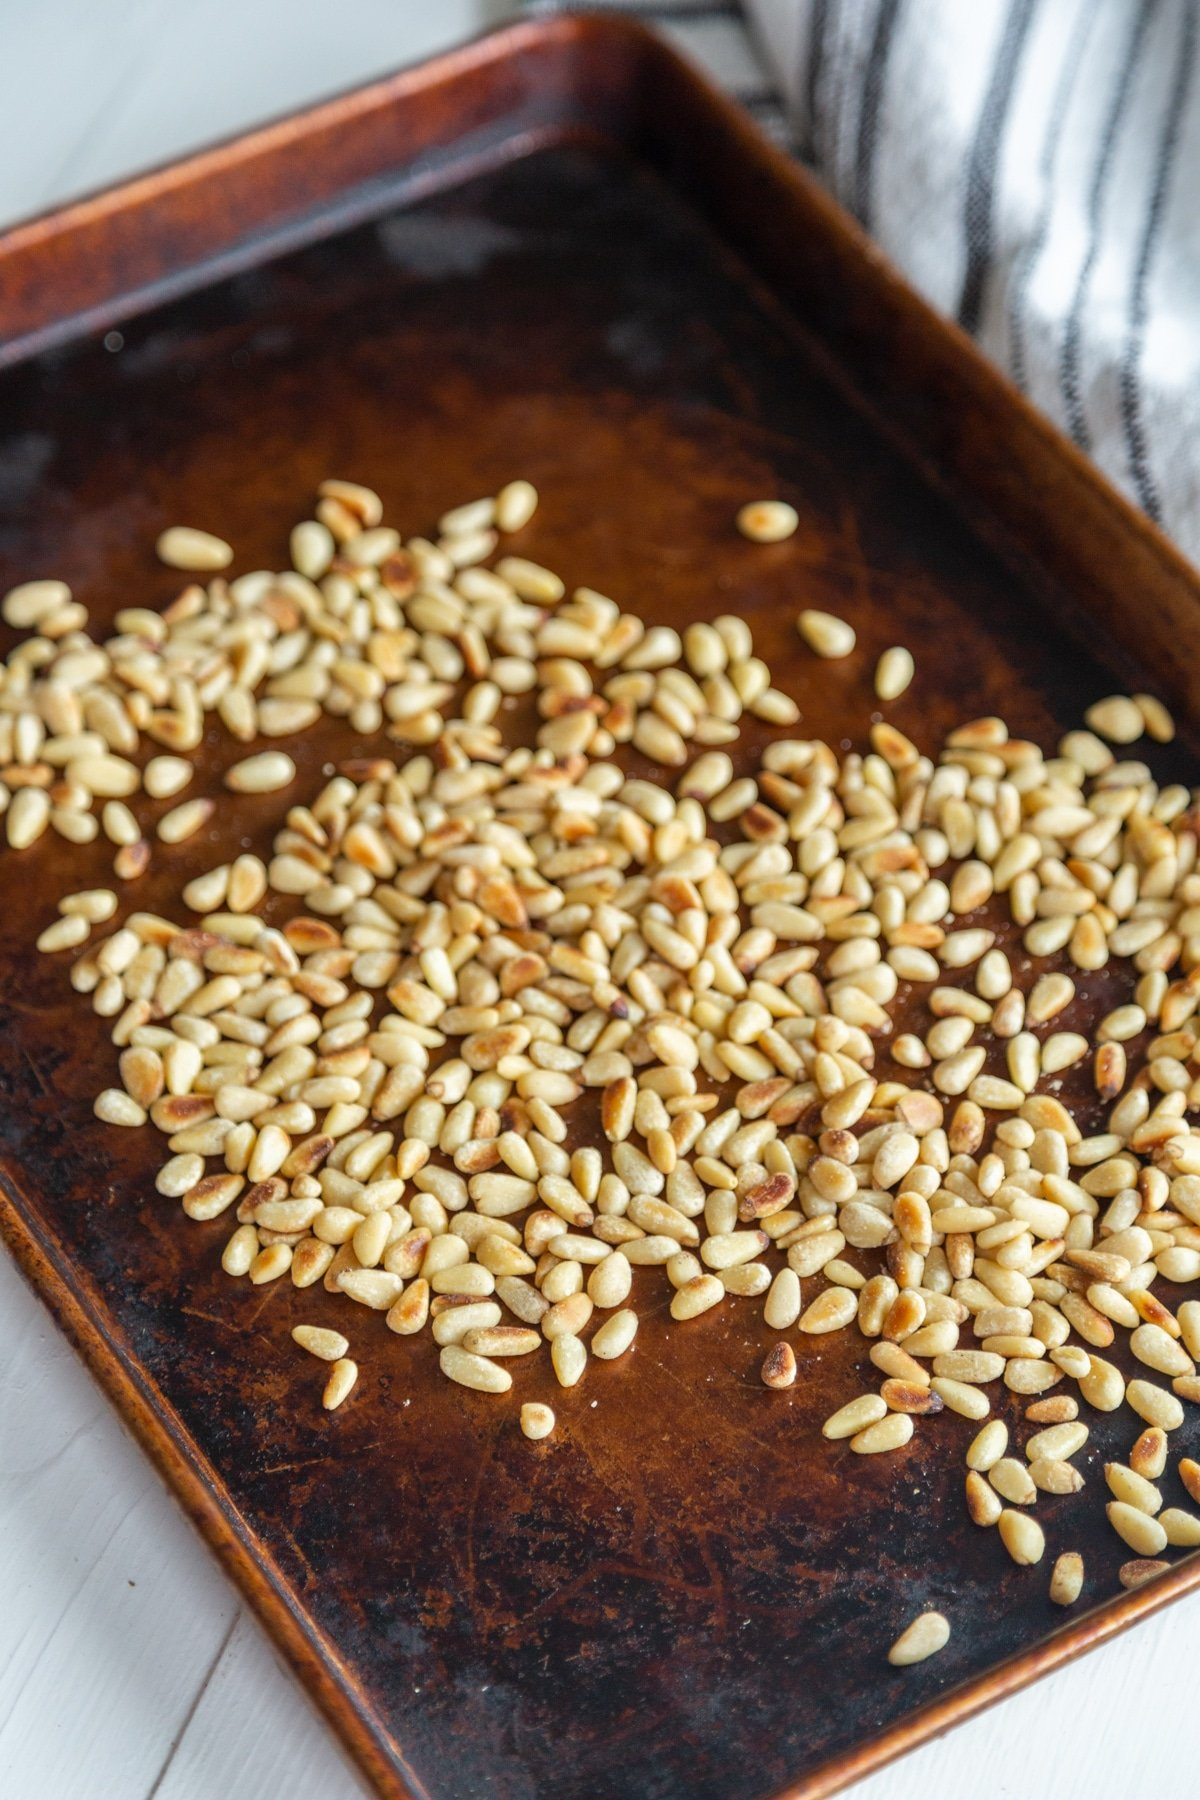 Toasted Pine Nuts on a rimmed baking sheet.